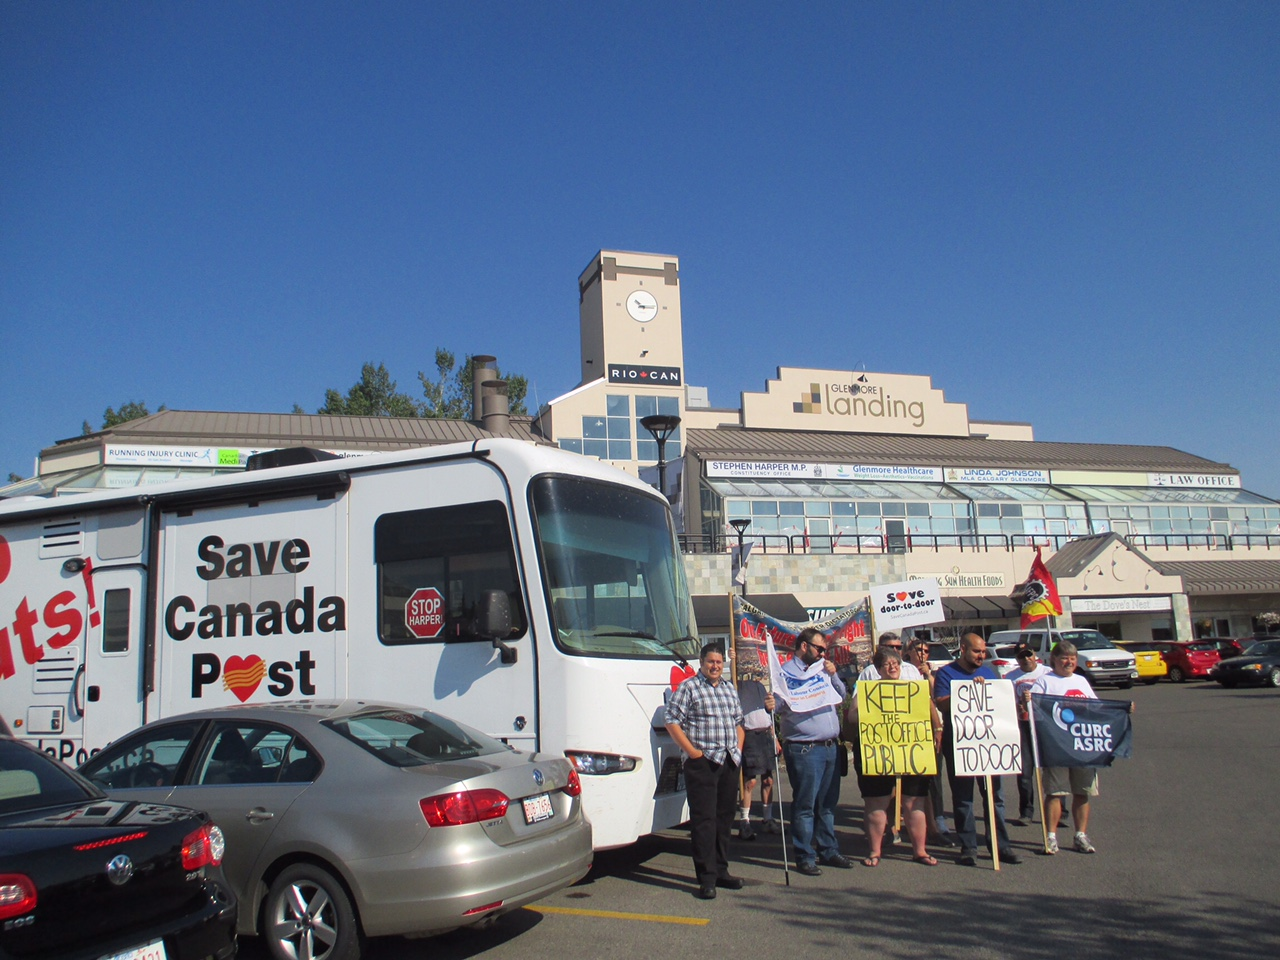 At Stephen Harper's constituency office in Calgary